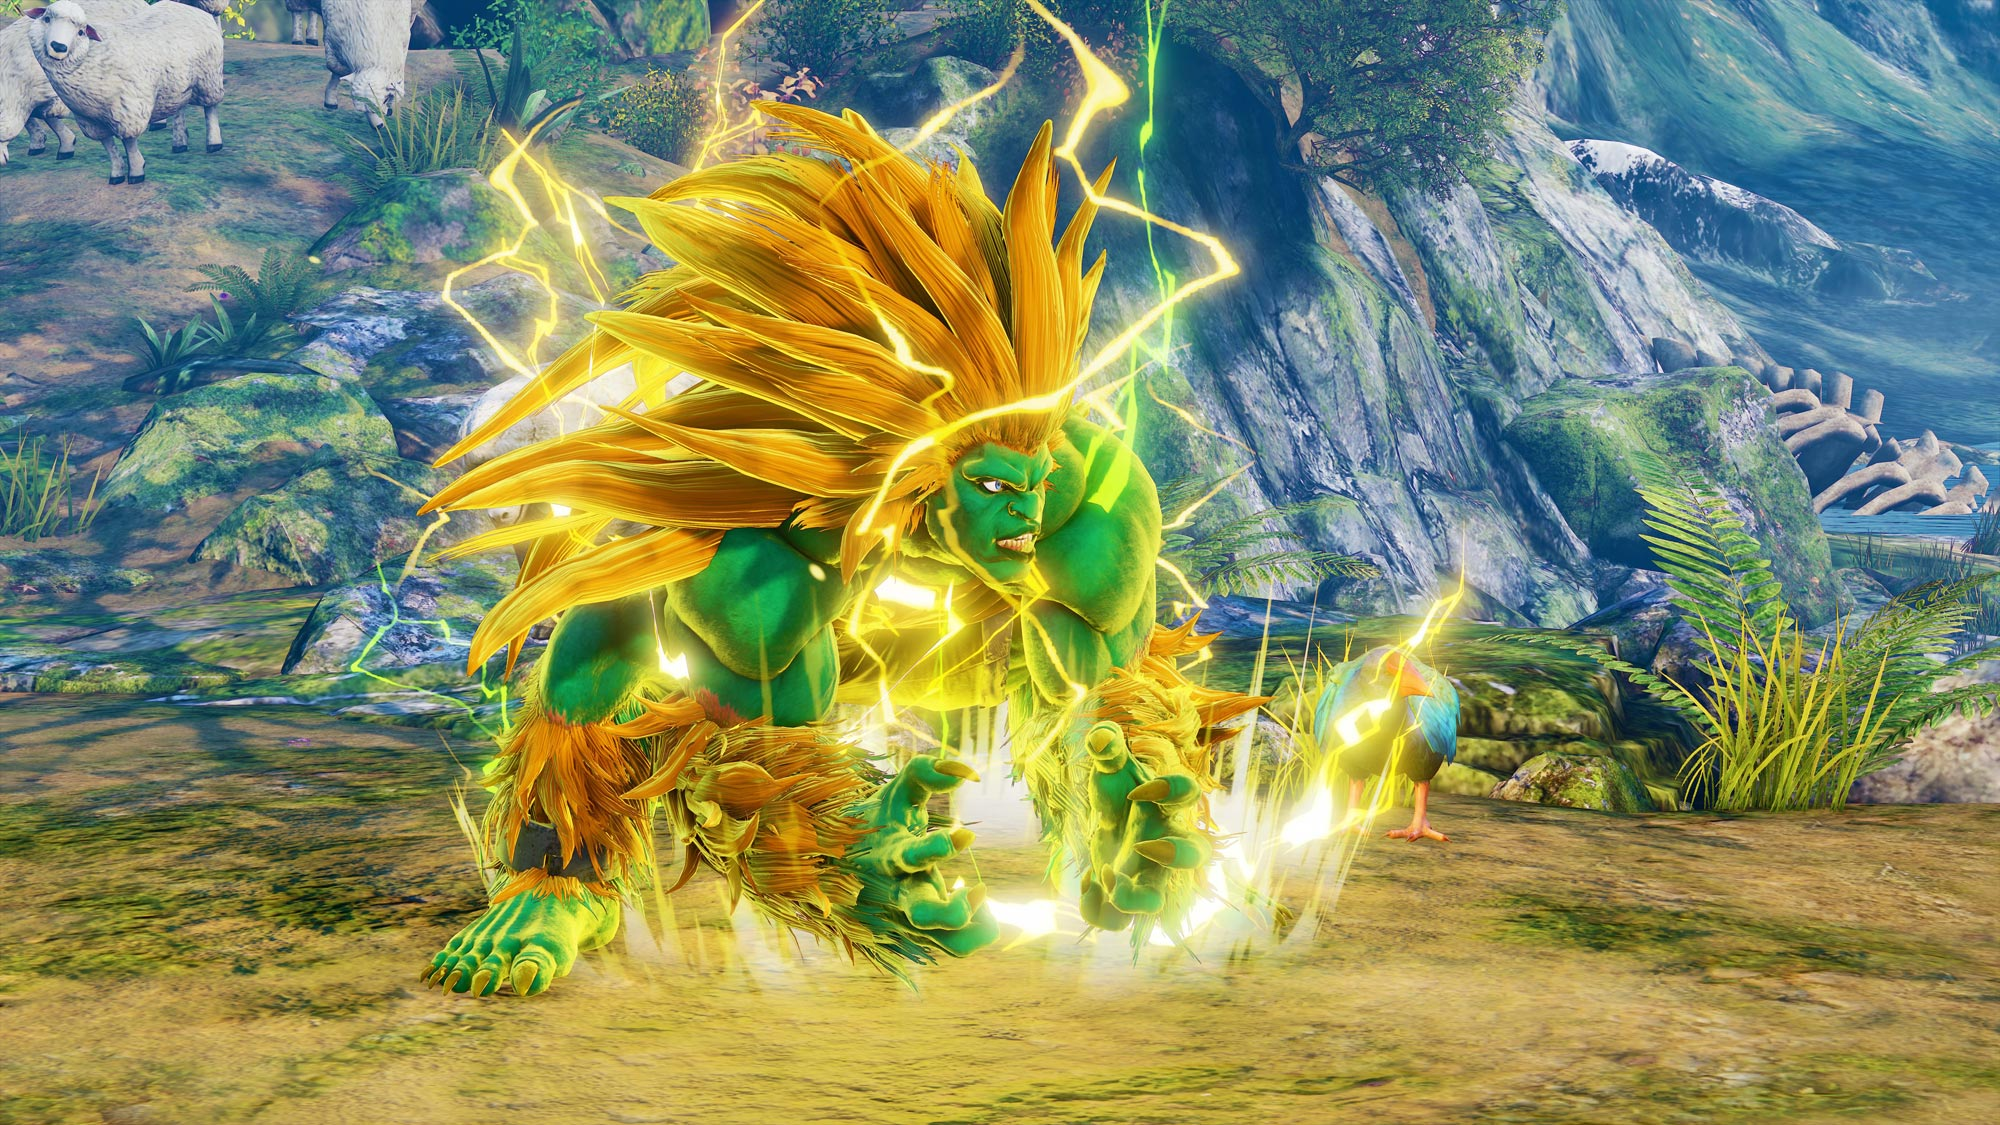 Blanka in Street Fighter 5: Arcade Edition 5 out of 11 image gallery